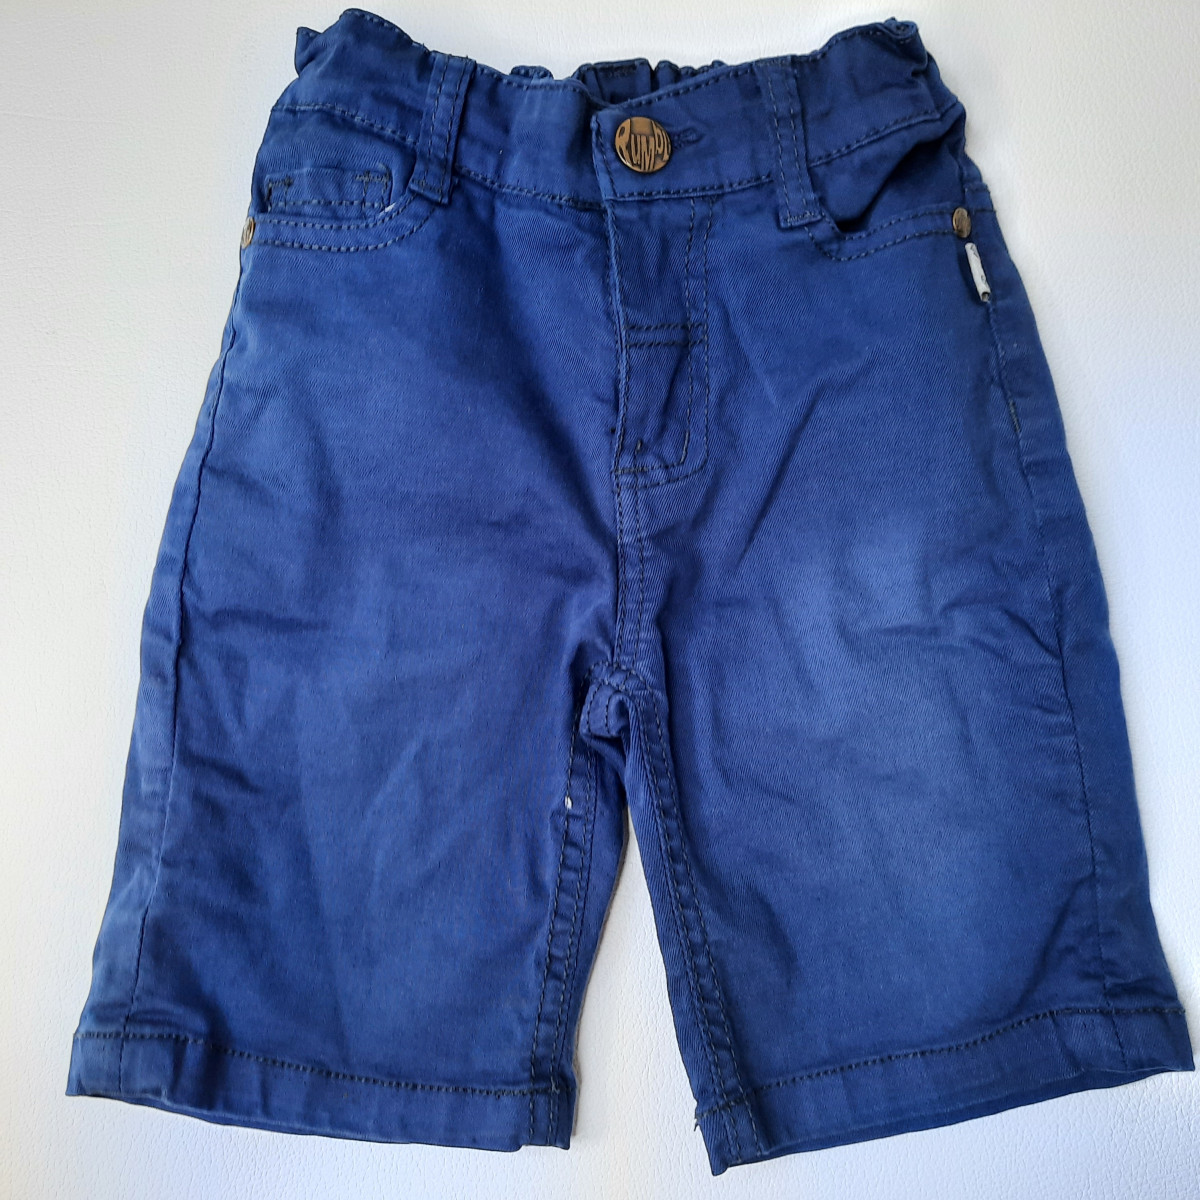 Shorts, Bermudas - photo 17